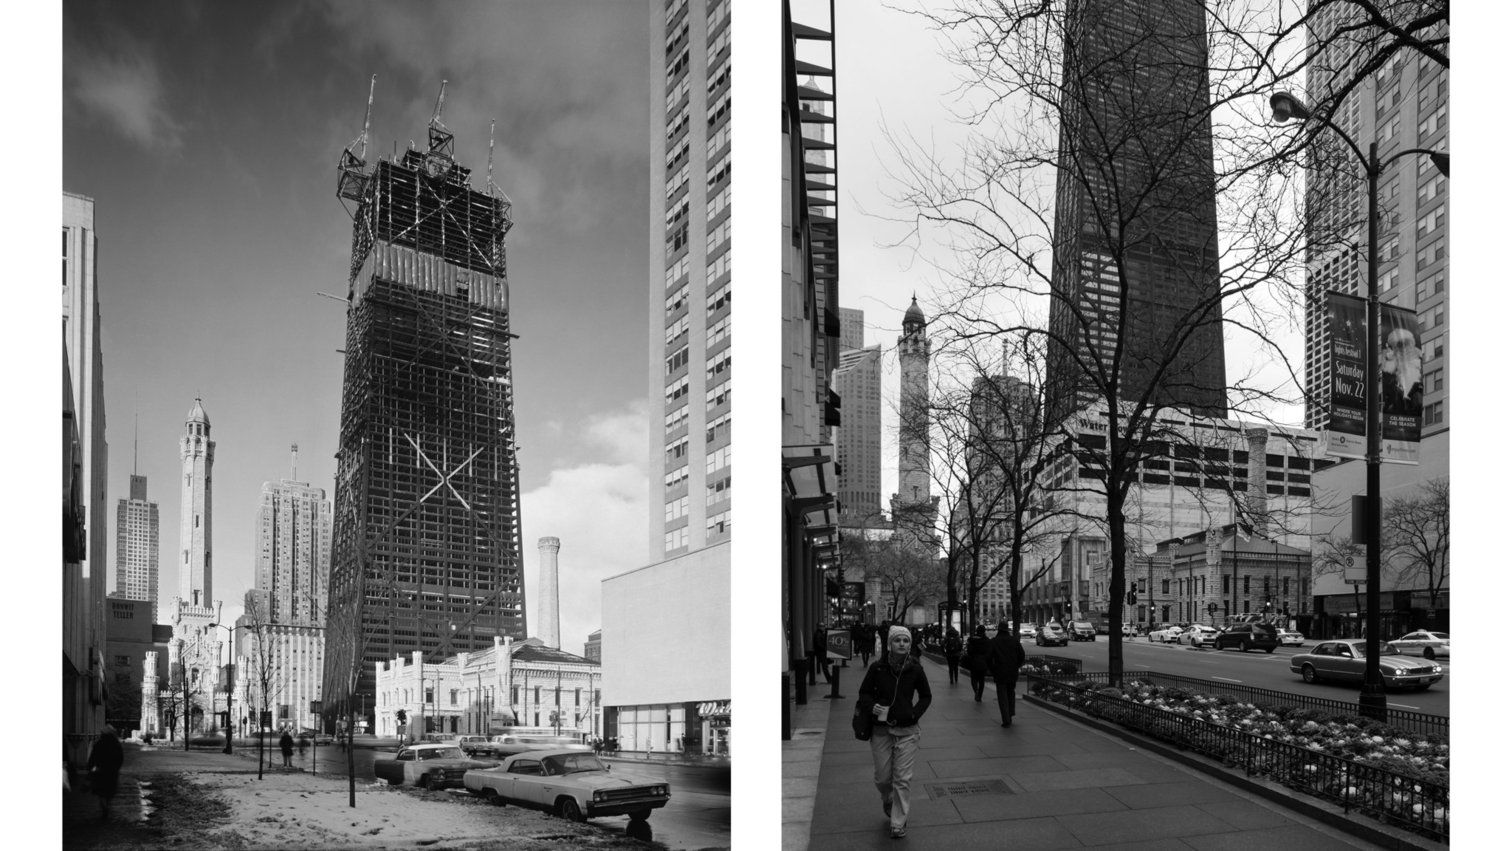 Left: The construction of the John Hancock Center circa 1965-1969. Right: The Hancock Center is completed, as is Water Tower Place. The historic water tower buildings and a ground-floor Walgreens at right remain the same.